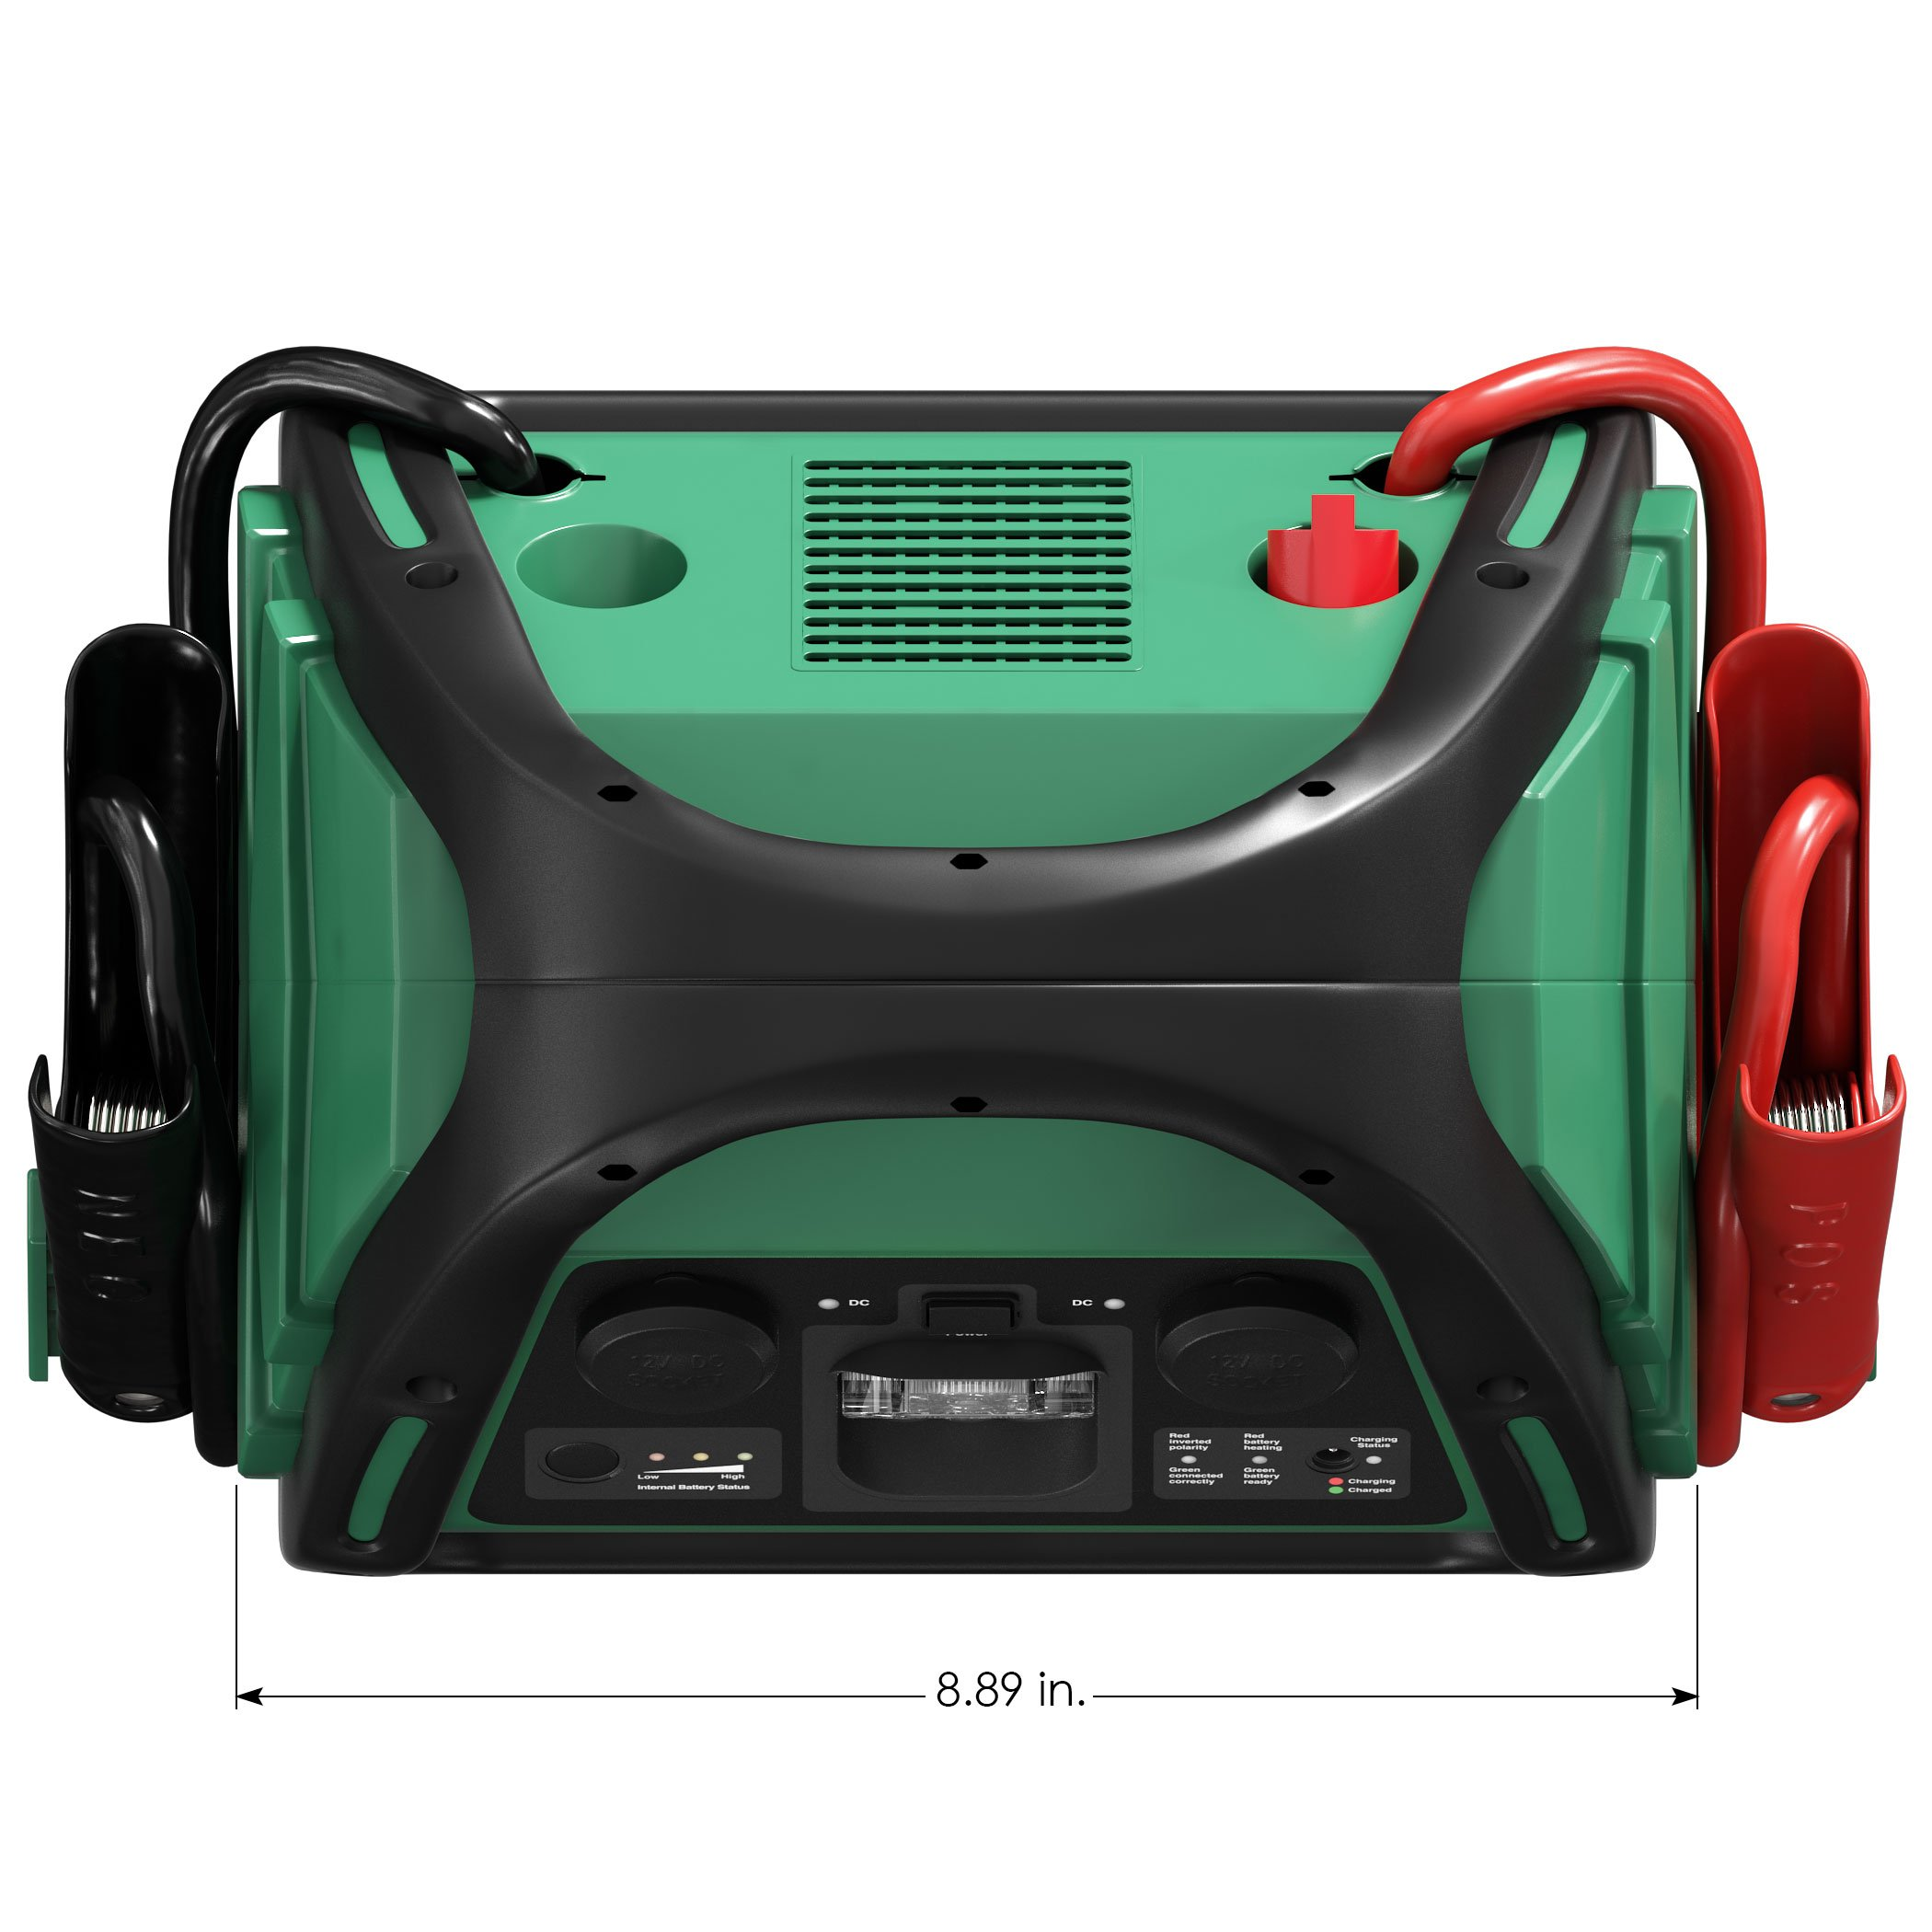 Battery Tender 1200 Peak Amp AGM Car Jump Starter with 2100A USB Ports to Charge Mobile Devices and 12V DC socket to Power Other Accessories by Battery Tender (Image #7)